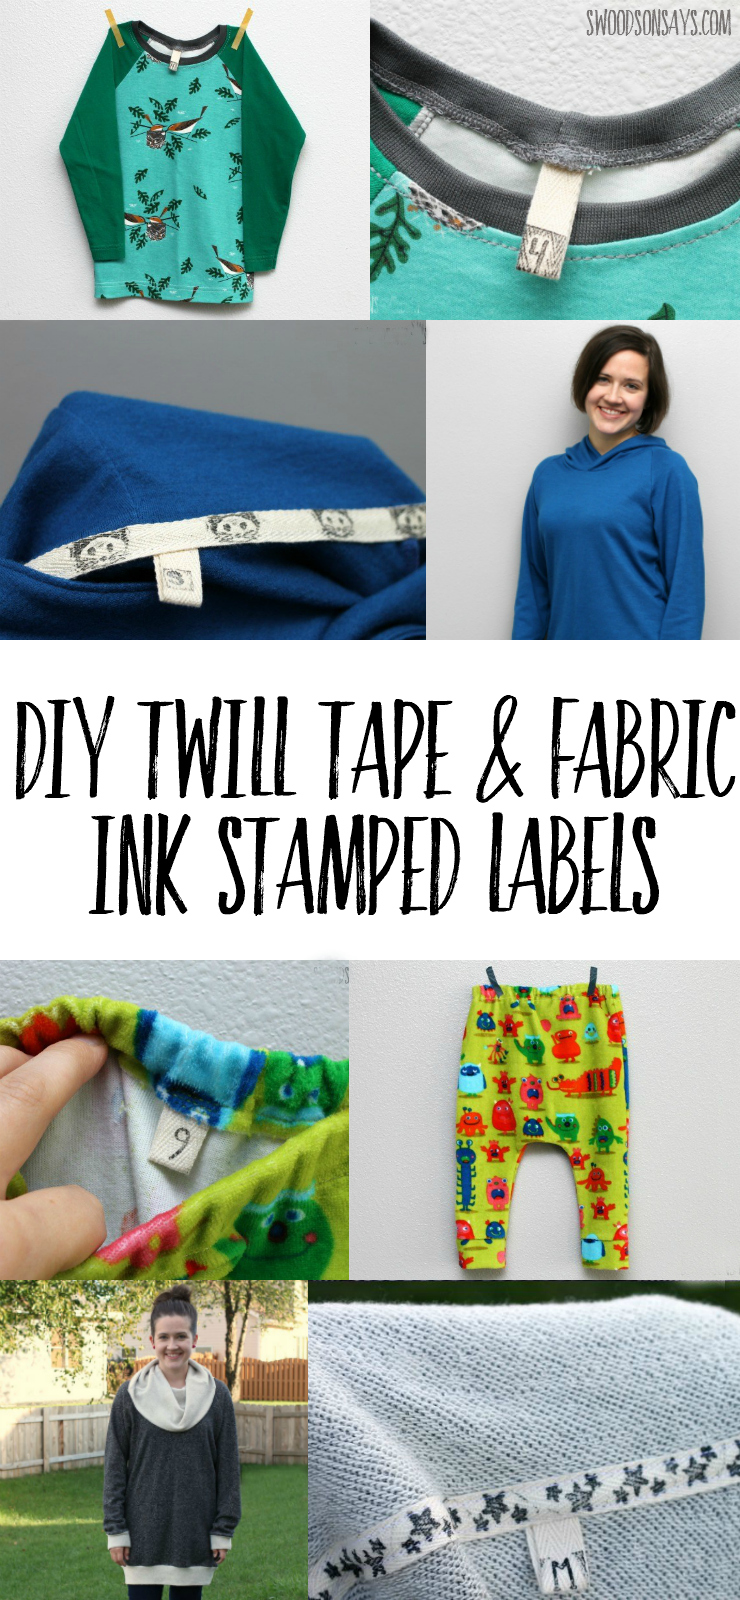 Check out how easy it is to make diy clothing labels with twill tape and fabric ink! Super cheap and they hold up great, this is perfect for handmade gifts and clothes. #diylabels #clothinglabels #twilltape